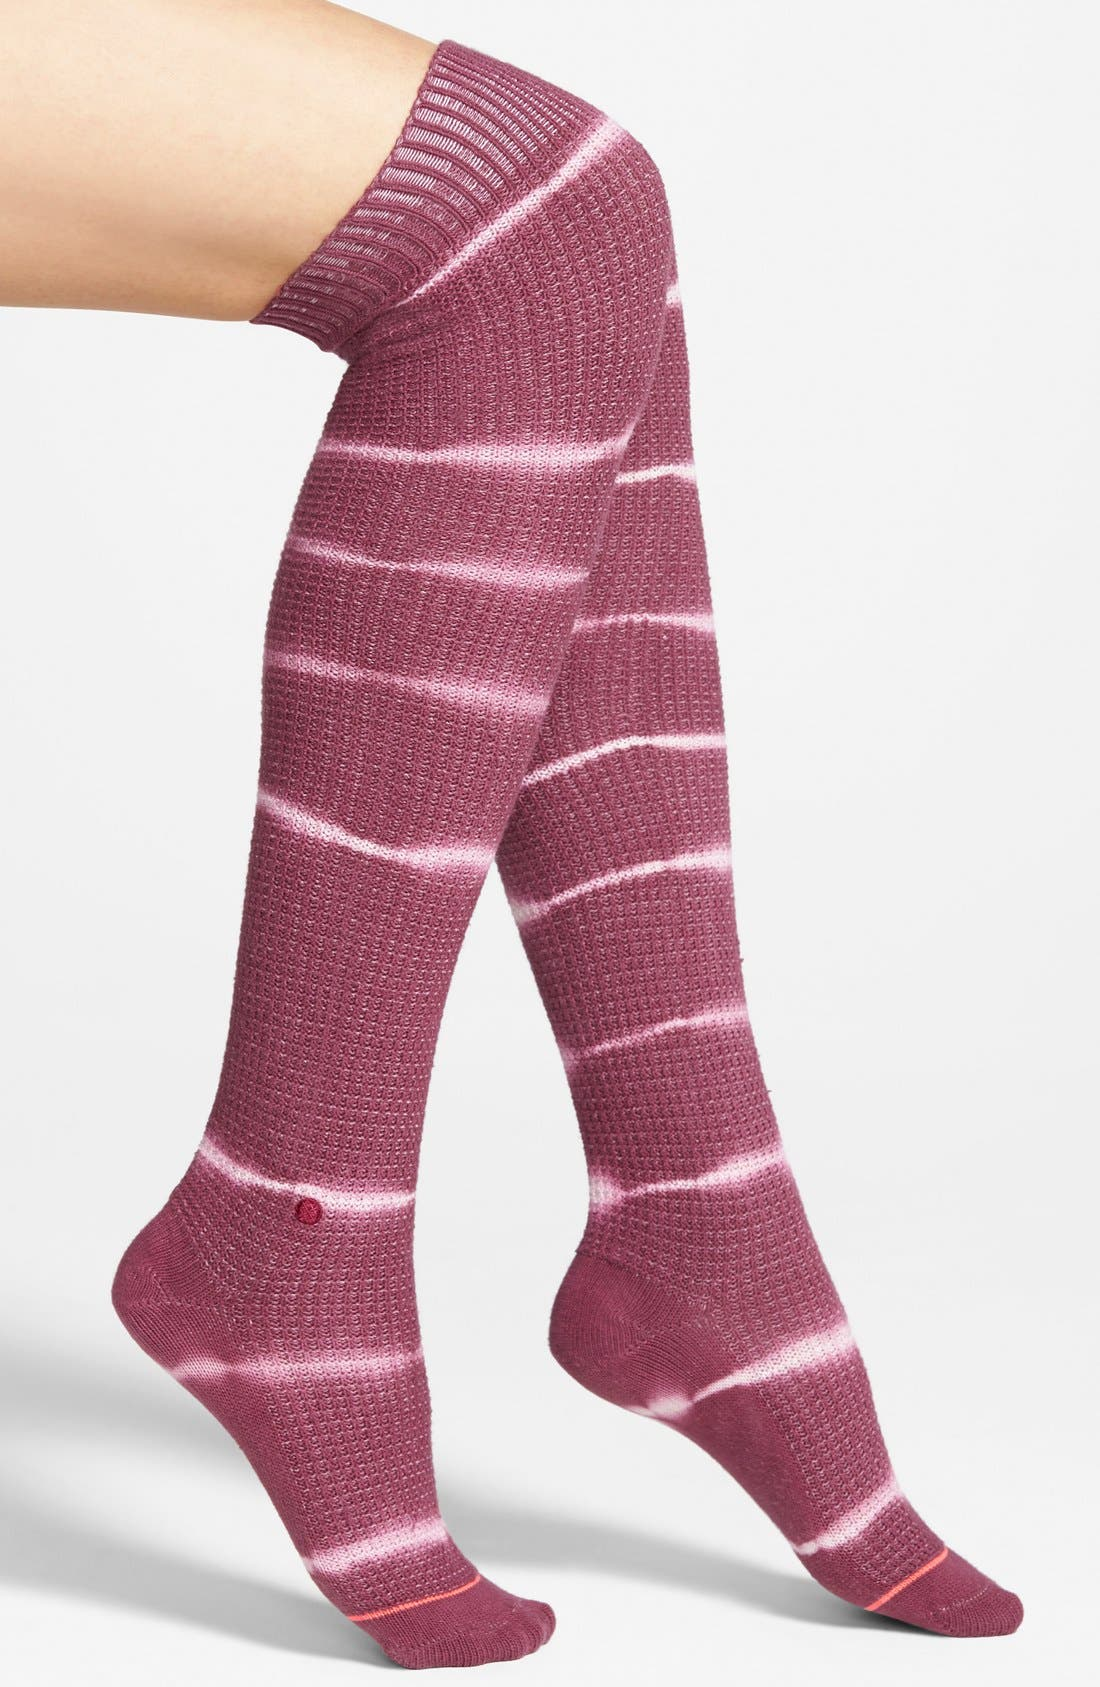 Alternate Image 1 Selected - Stance 'Icicle' Tie Dye Stripe Over the Knee Socks